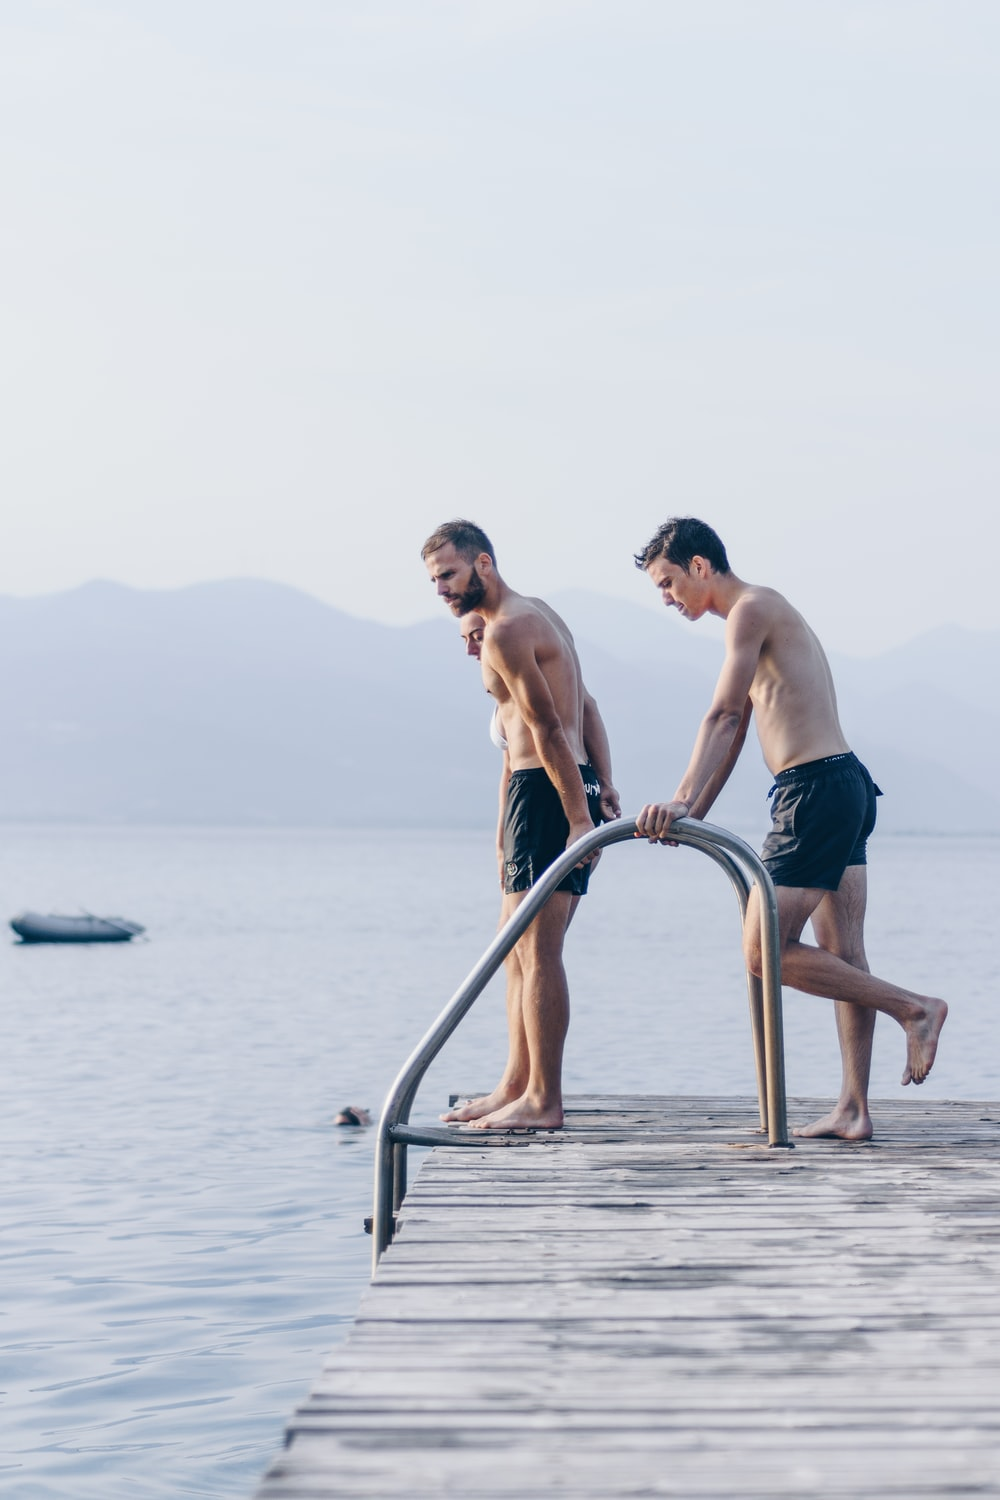 two men standing on brown dock near body of water during daytime